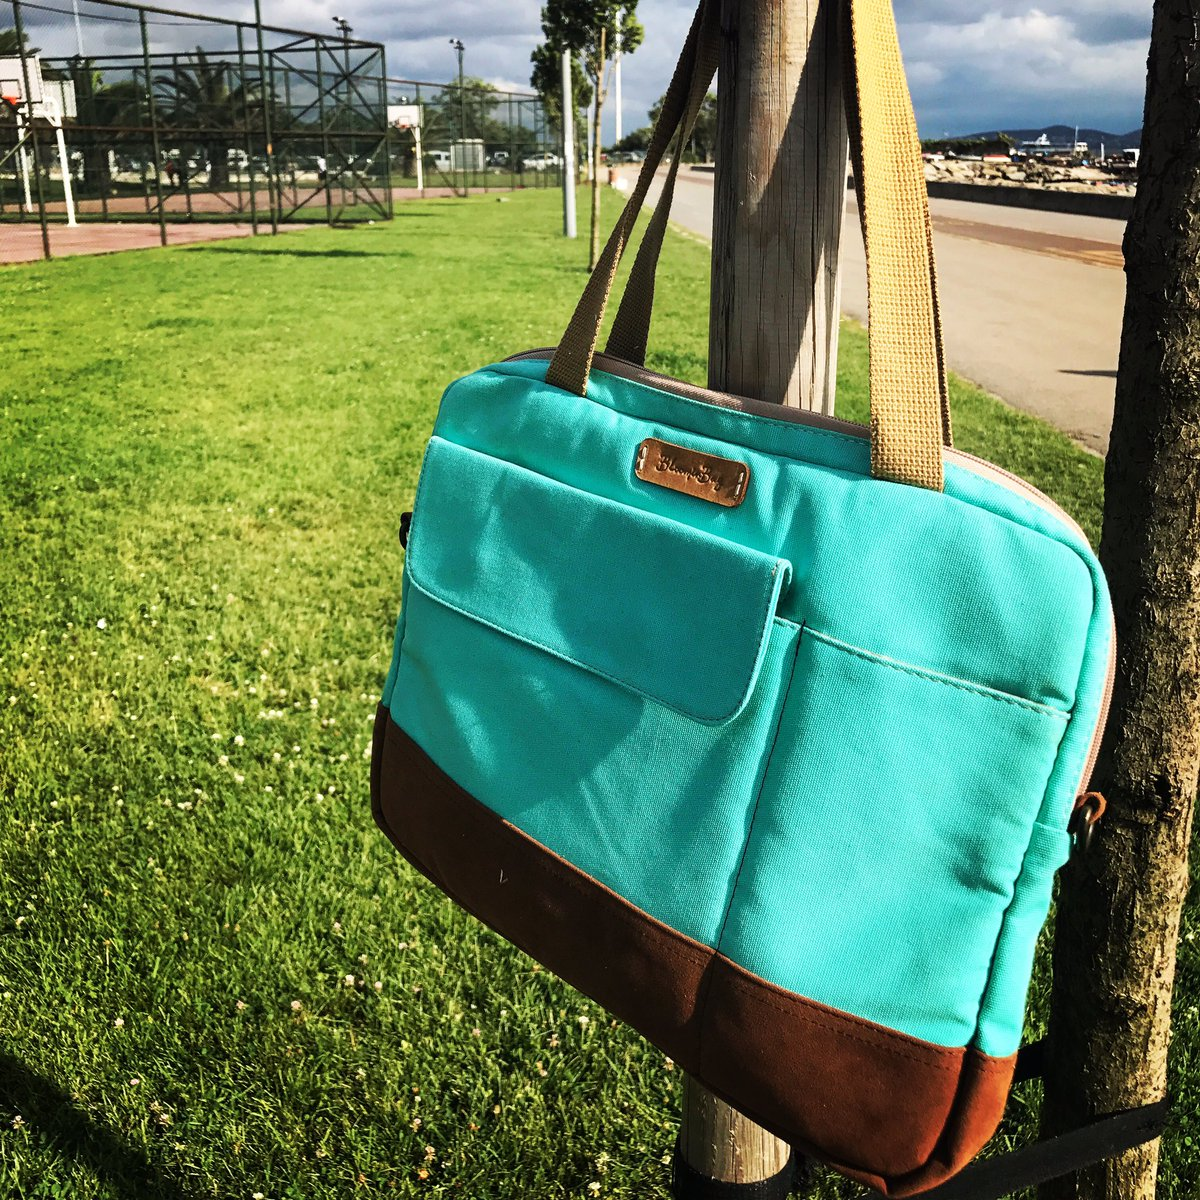 &quot;Storms make trees take deeper roots...&quot;  - BloominBag Greenish #LaptopBags for &lt;=15&quot;inches   http://www. BloominBag.com  &nbsp;   #canta #laptopcantasi<br>http://pic.twitter.com/WEP9EmUtDw